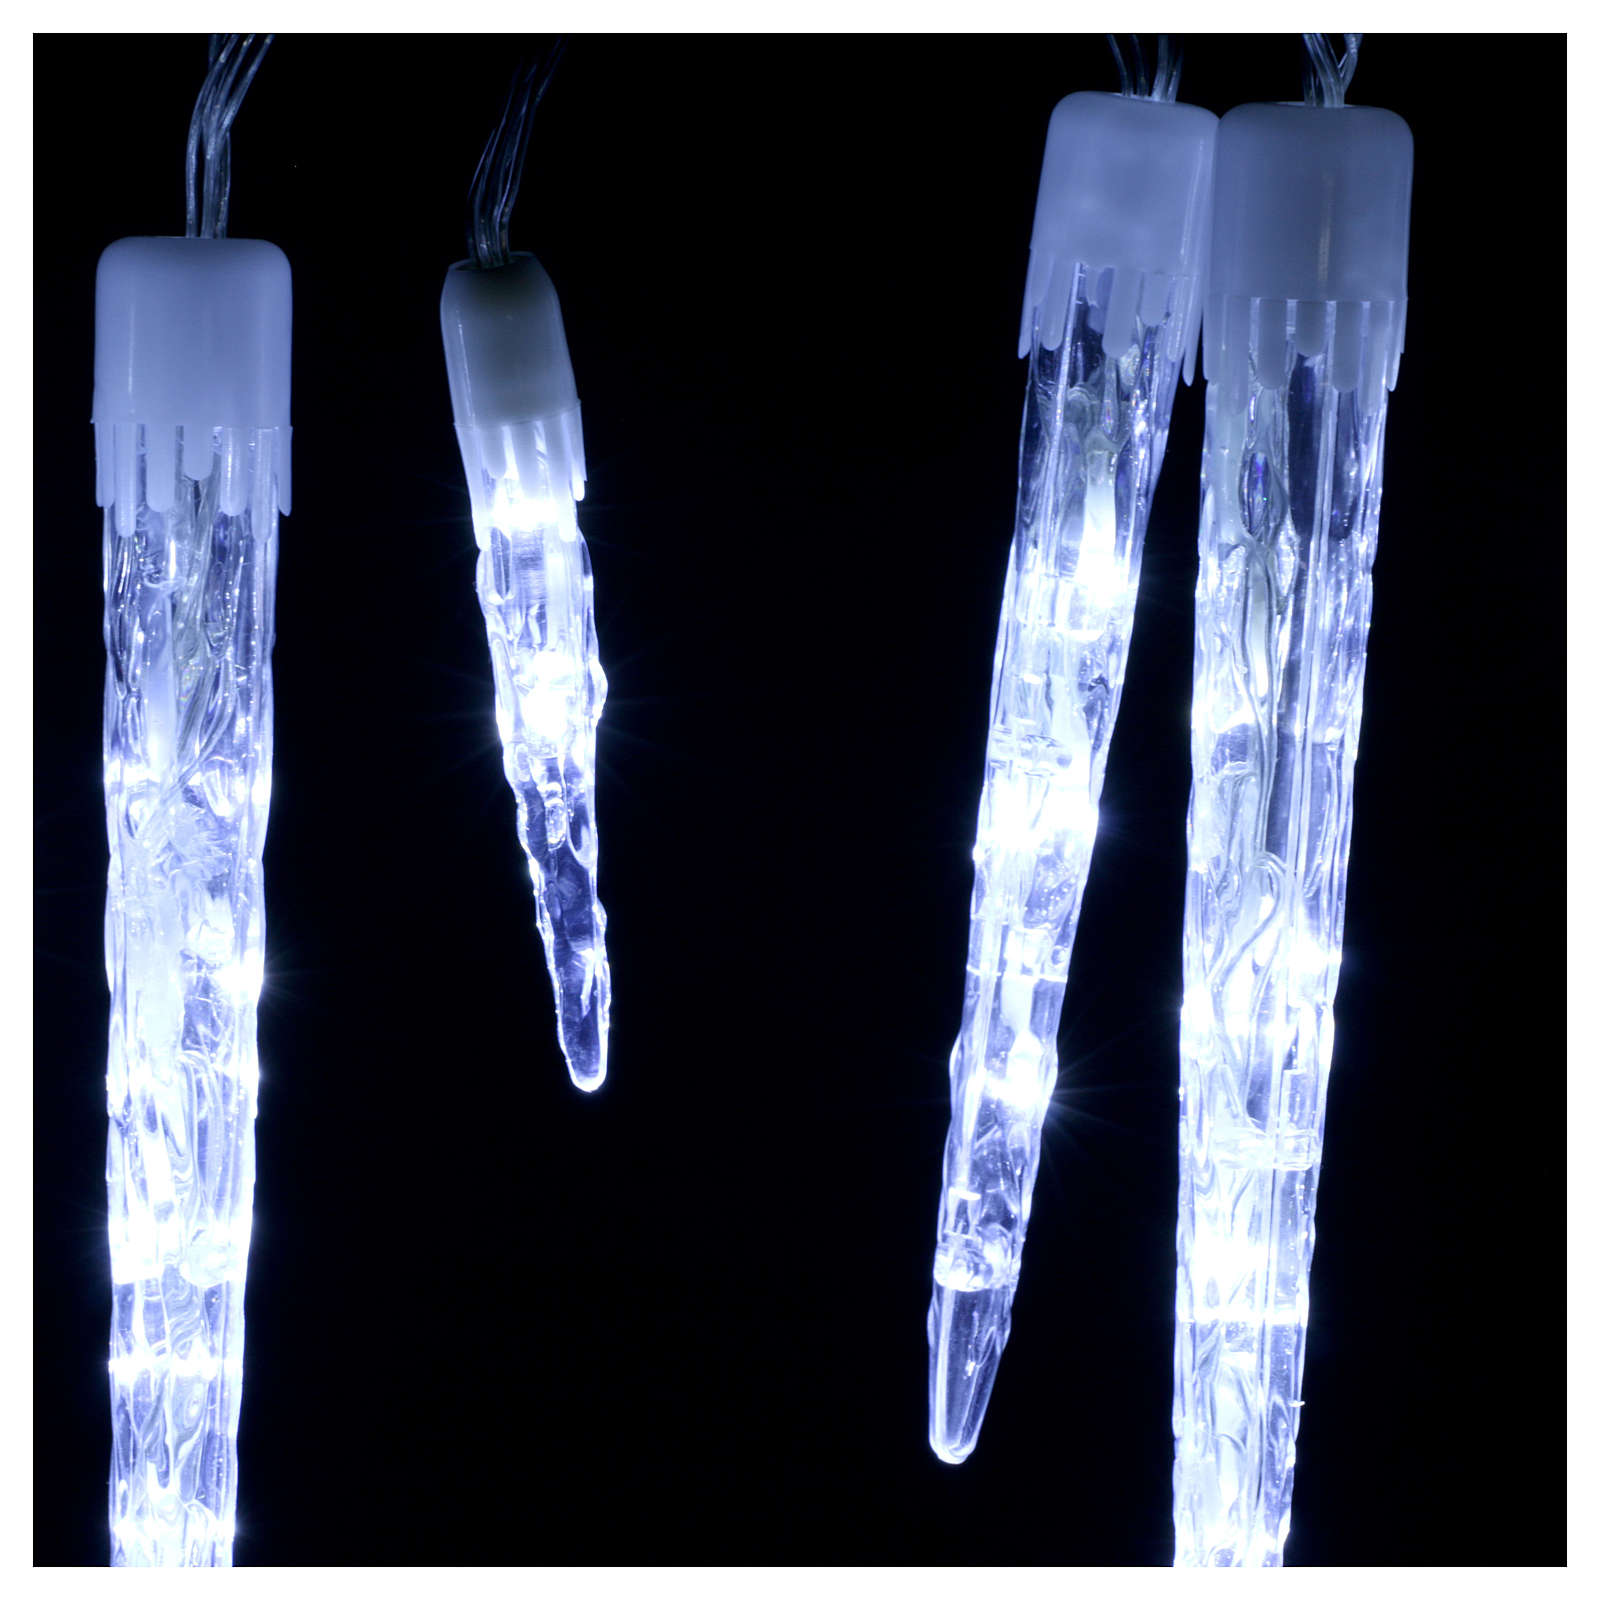 Christmas chain 15 icicles 70 leds internal external use 3